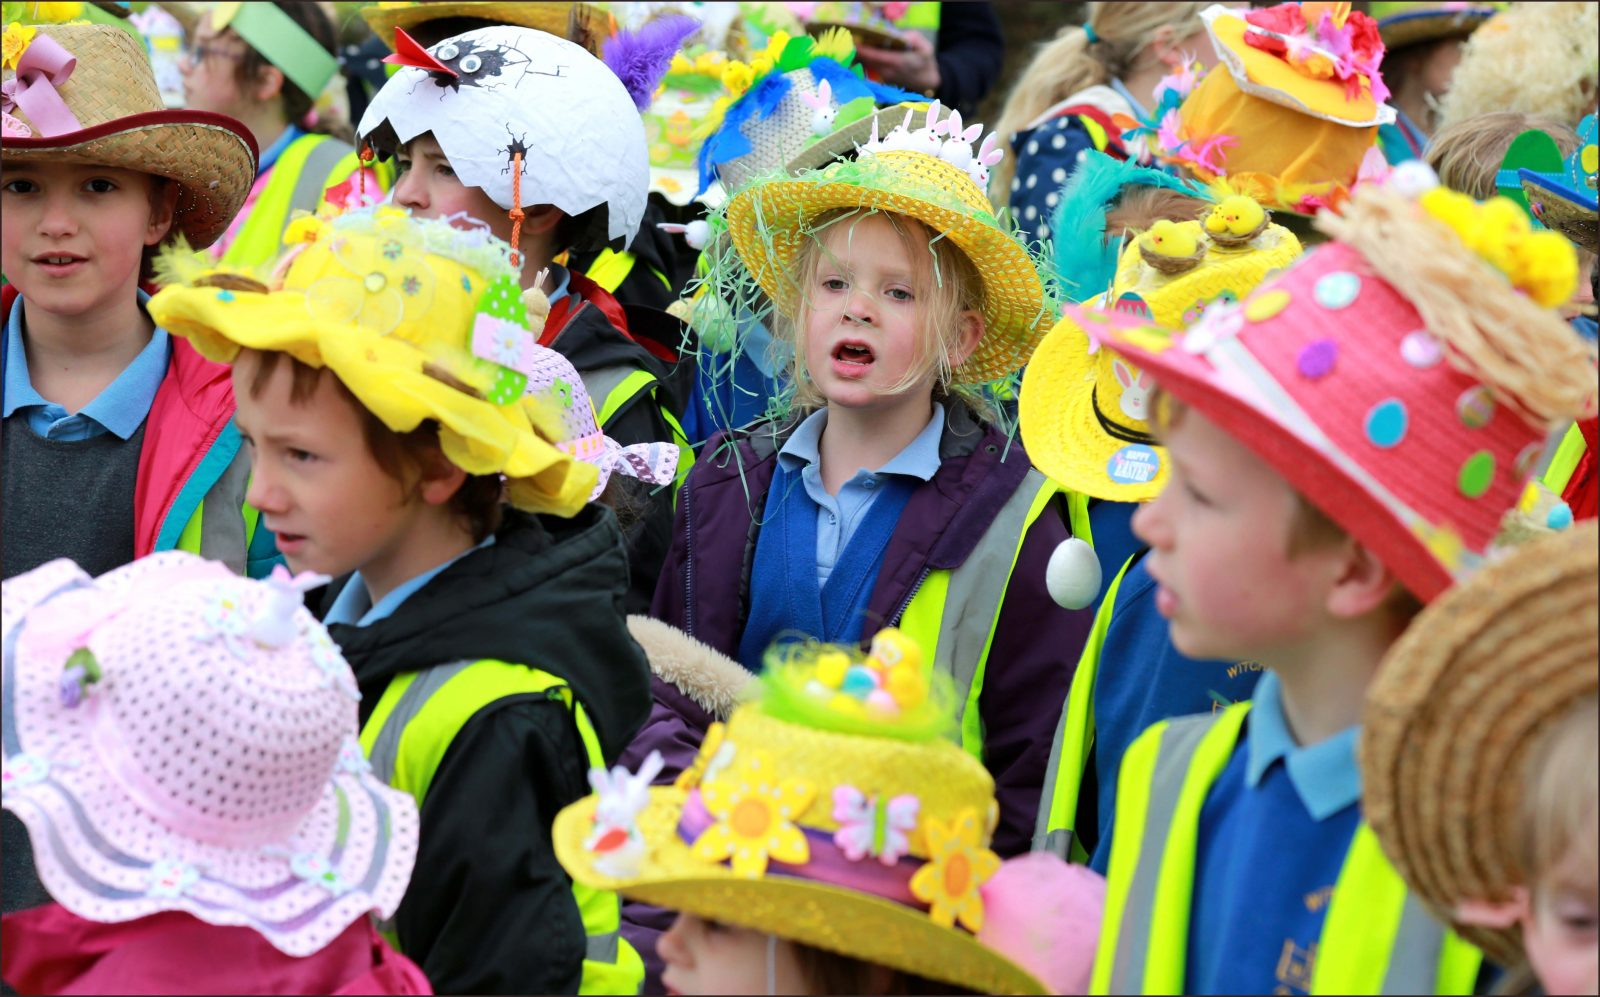 Witchampton First School held their annual Easter bonnet parade around the village on the last day of term.